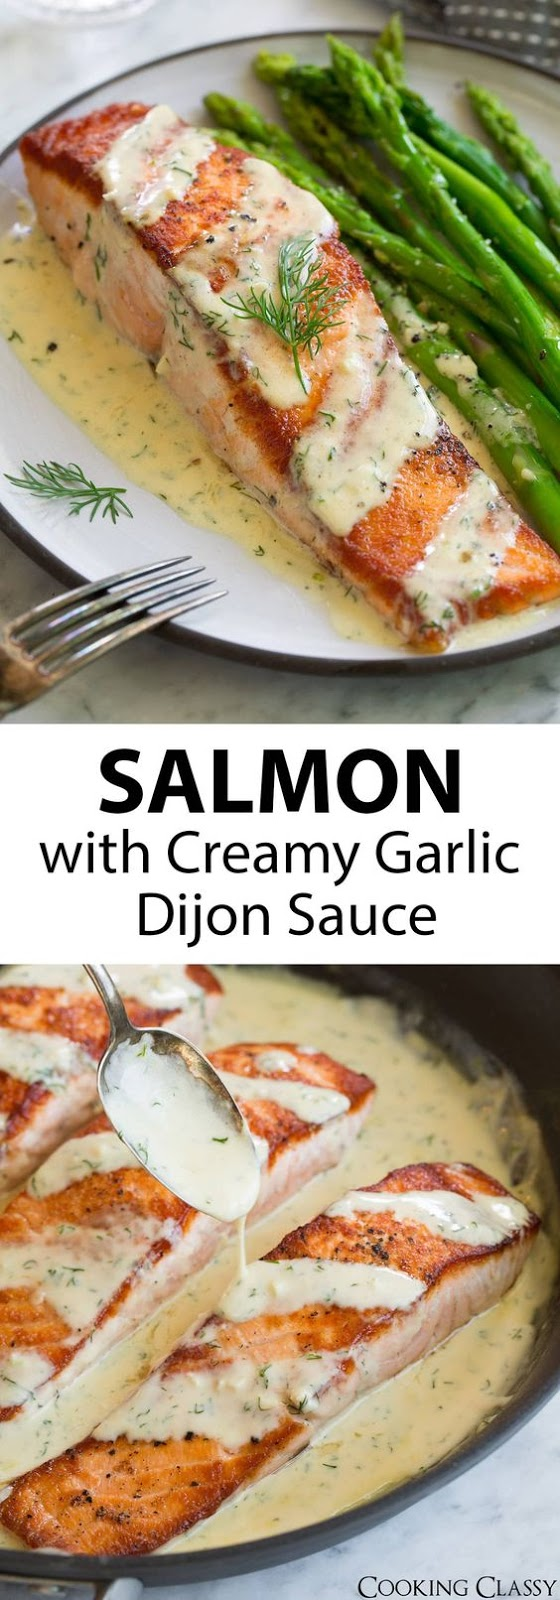 Pan Seared Salmon with Creamy Garlic Dijon Sauce